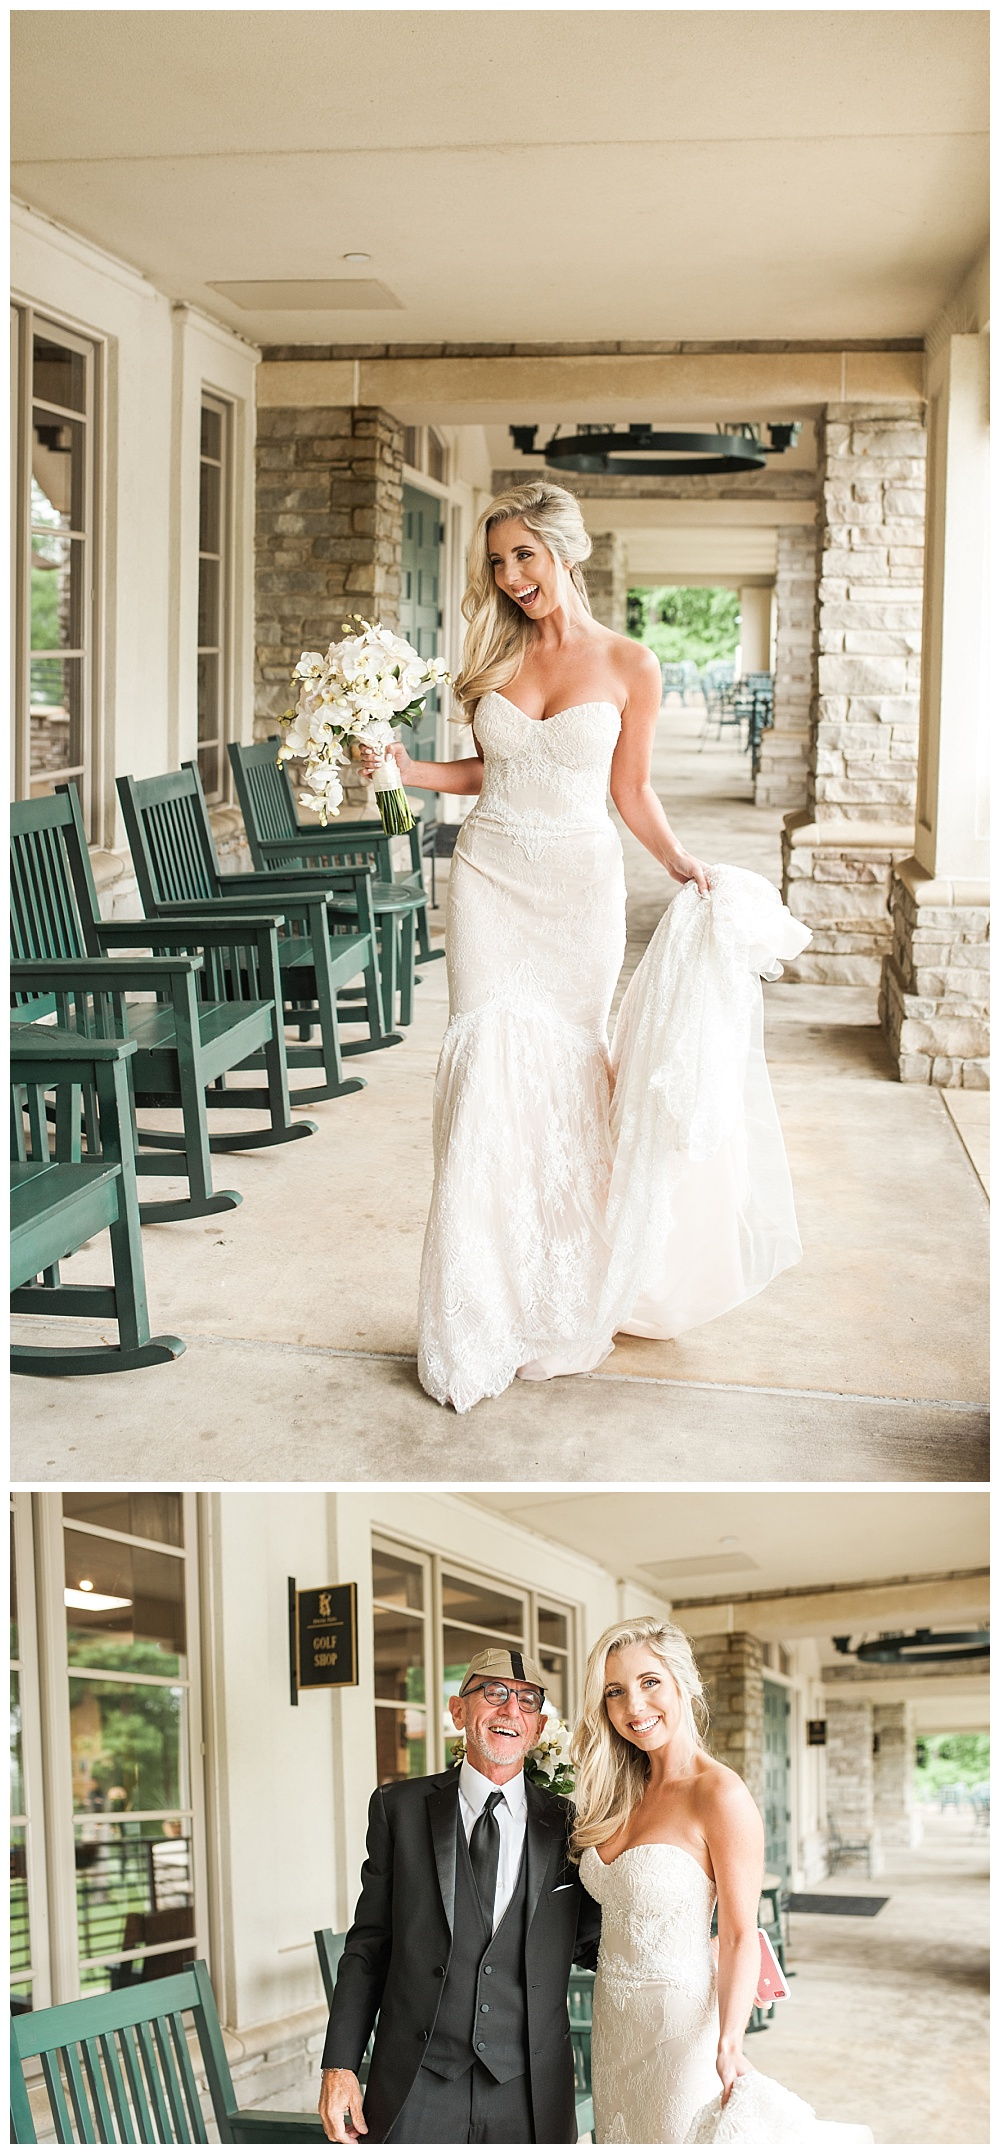 Stephanie Marie Photography TPC Deere Run Quad Cities Iowa City Wedding Photographer Ben Erin Dittmer_0022.jpg